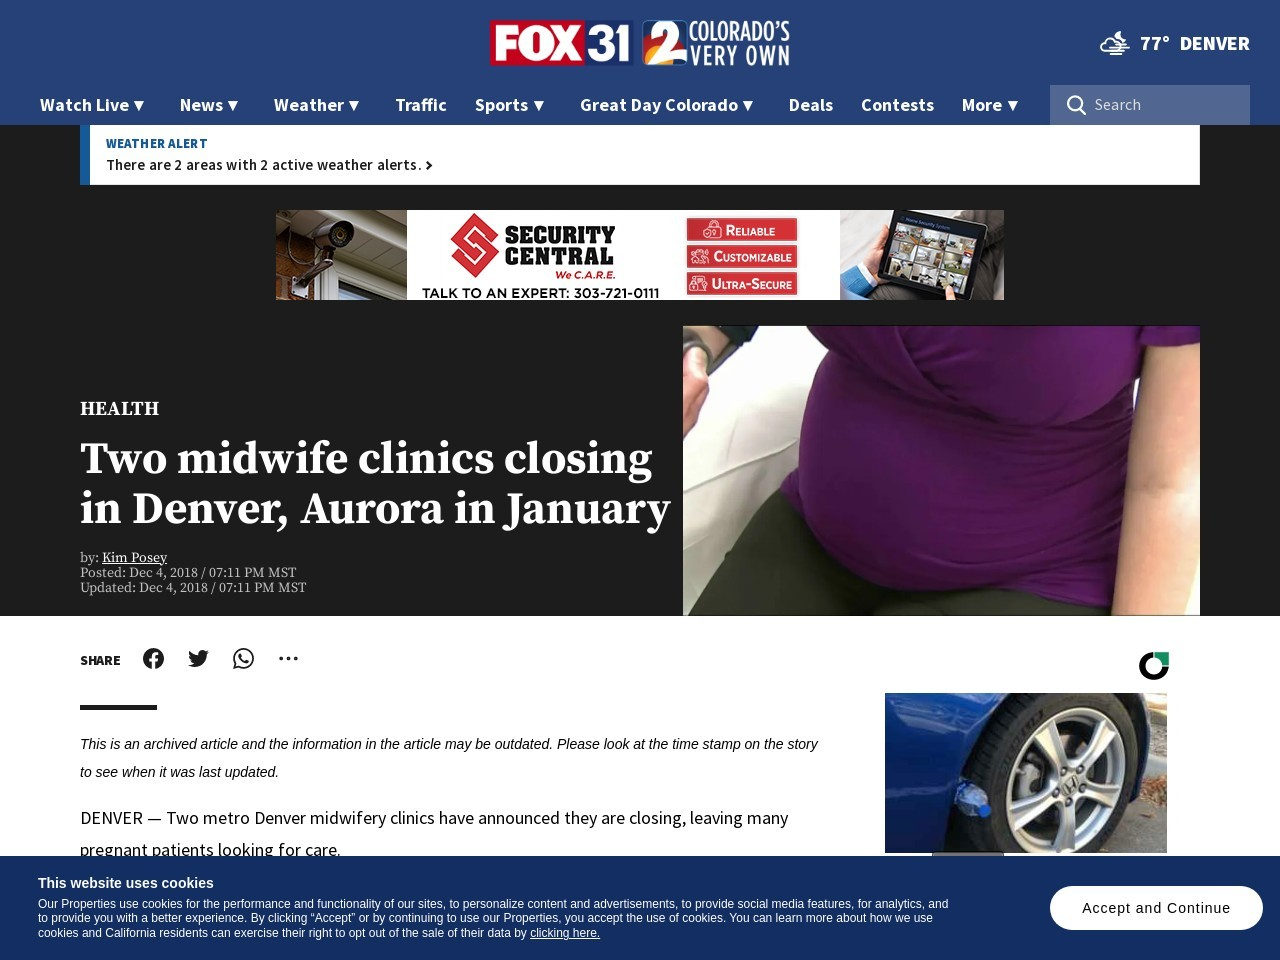 Two midwife clinics closing in Denver, Aurora in January